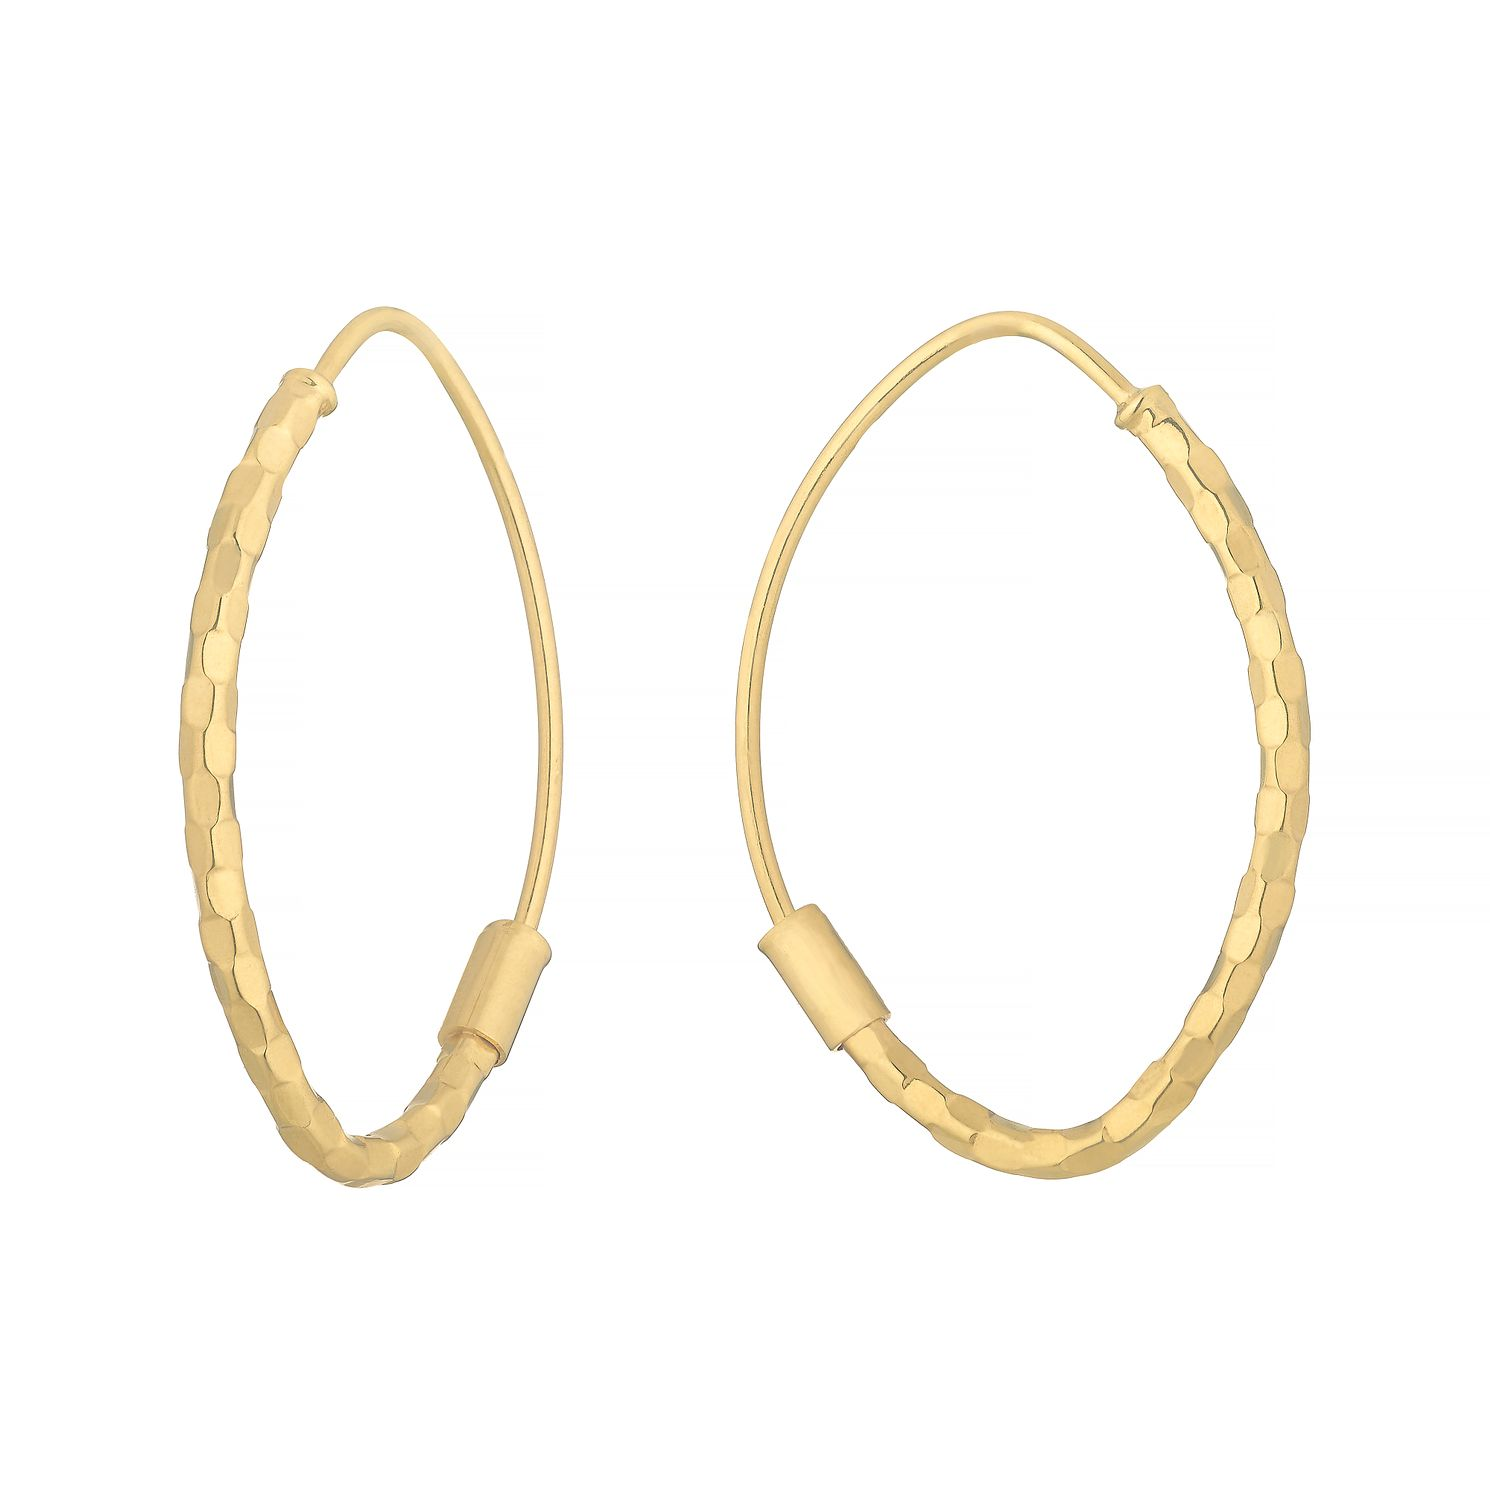 9ct Yellow Gold Hammered Oval Sleeper Earrings - Product number 4666658